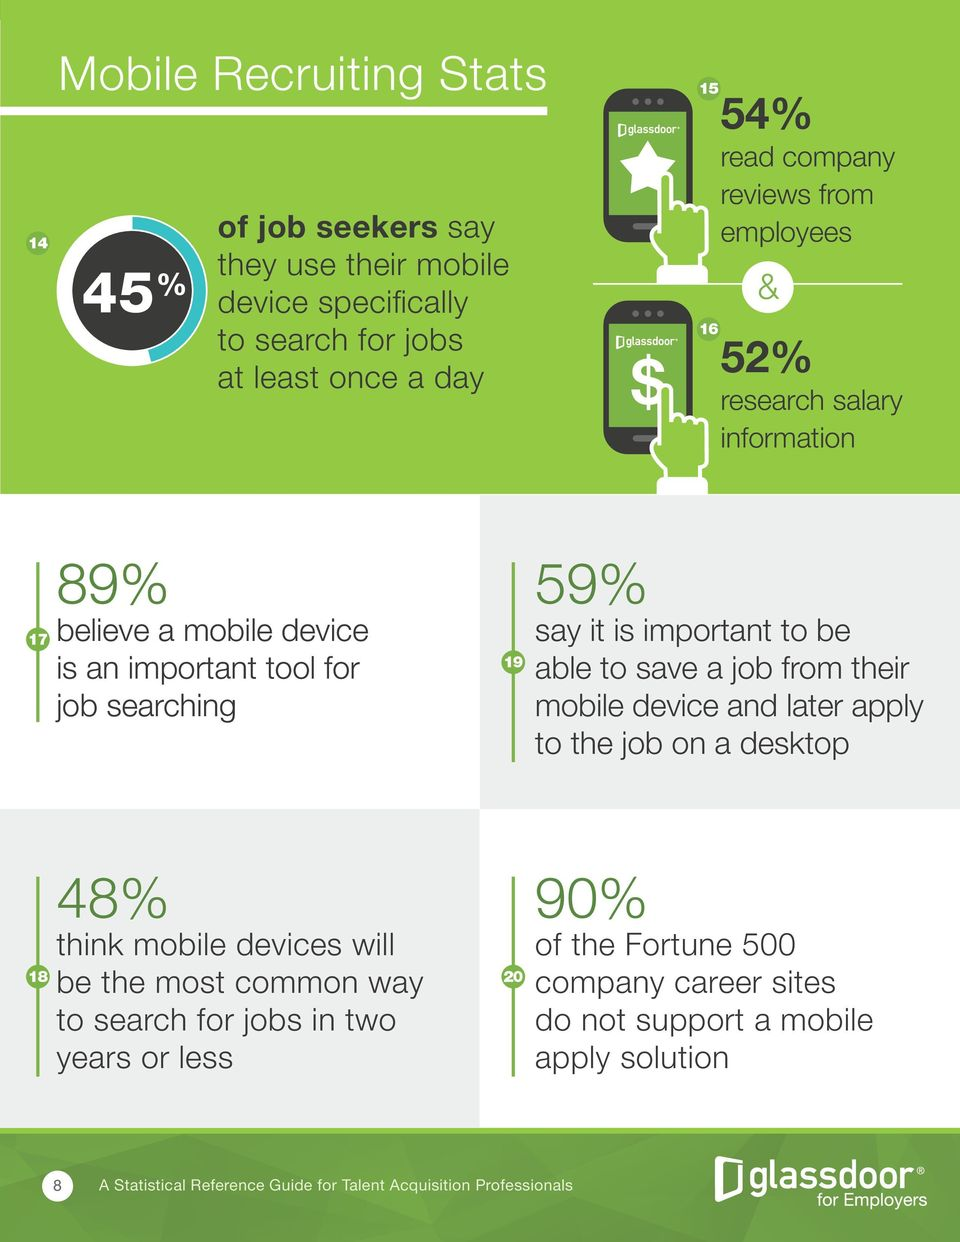 59% say it is important to be able to save a job from their mobile device and later apply to the job on a desktop 18 48% think mobile devices